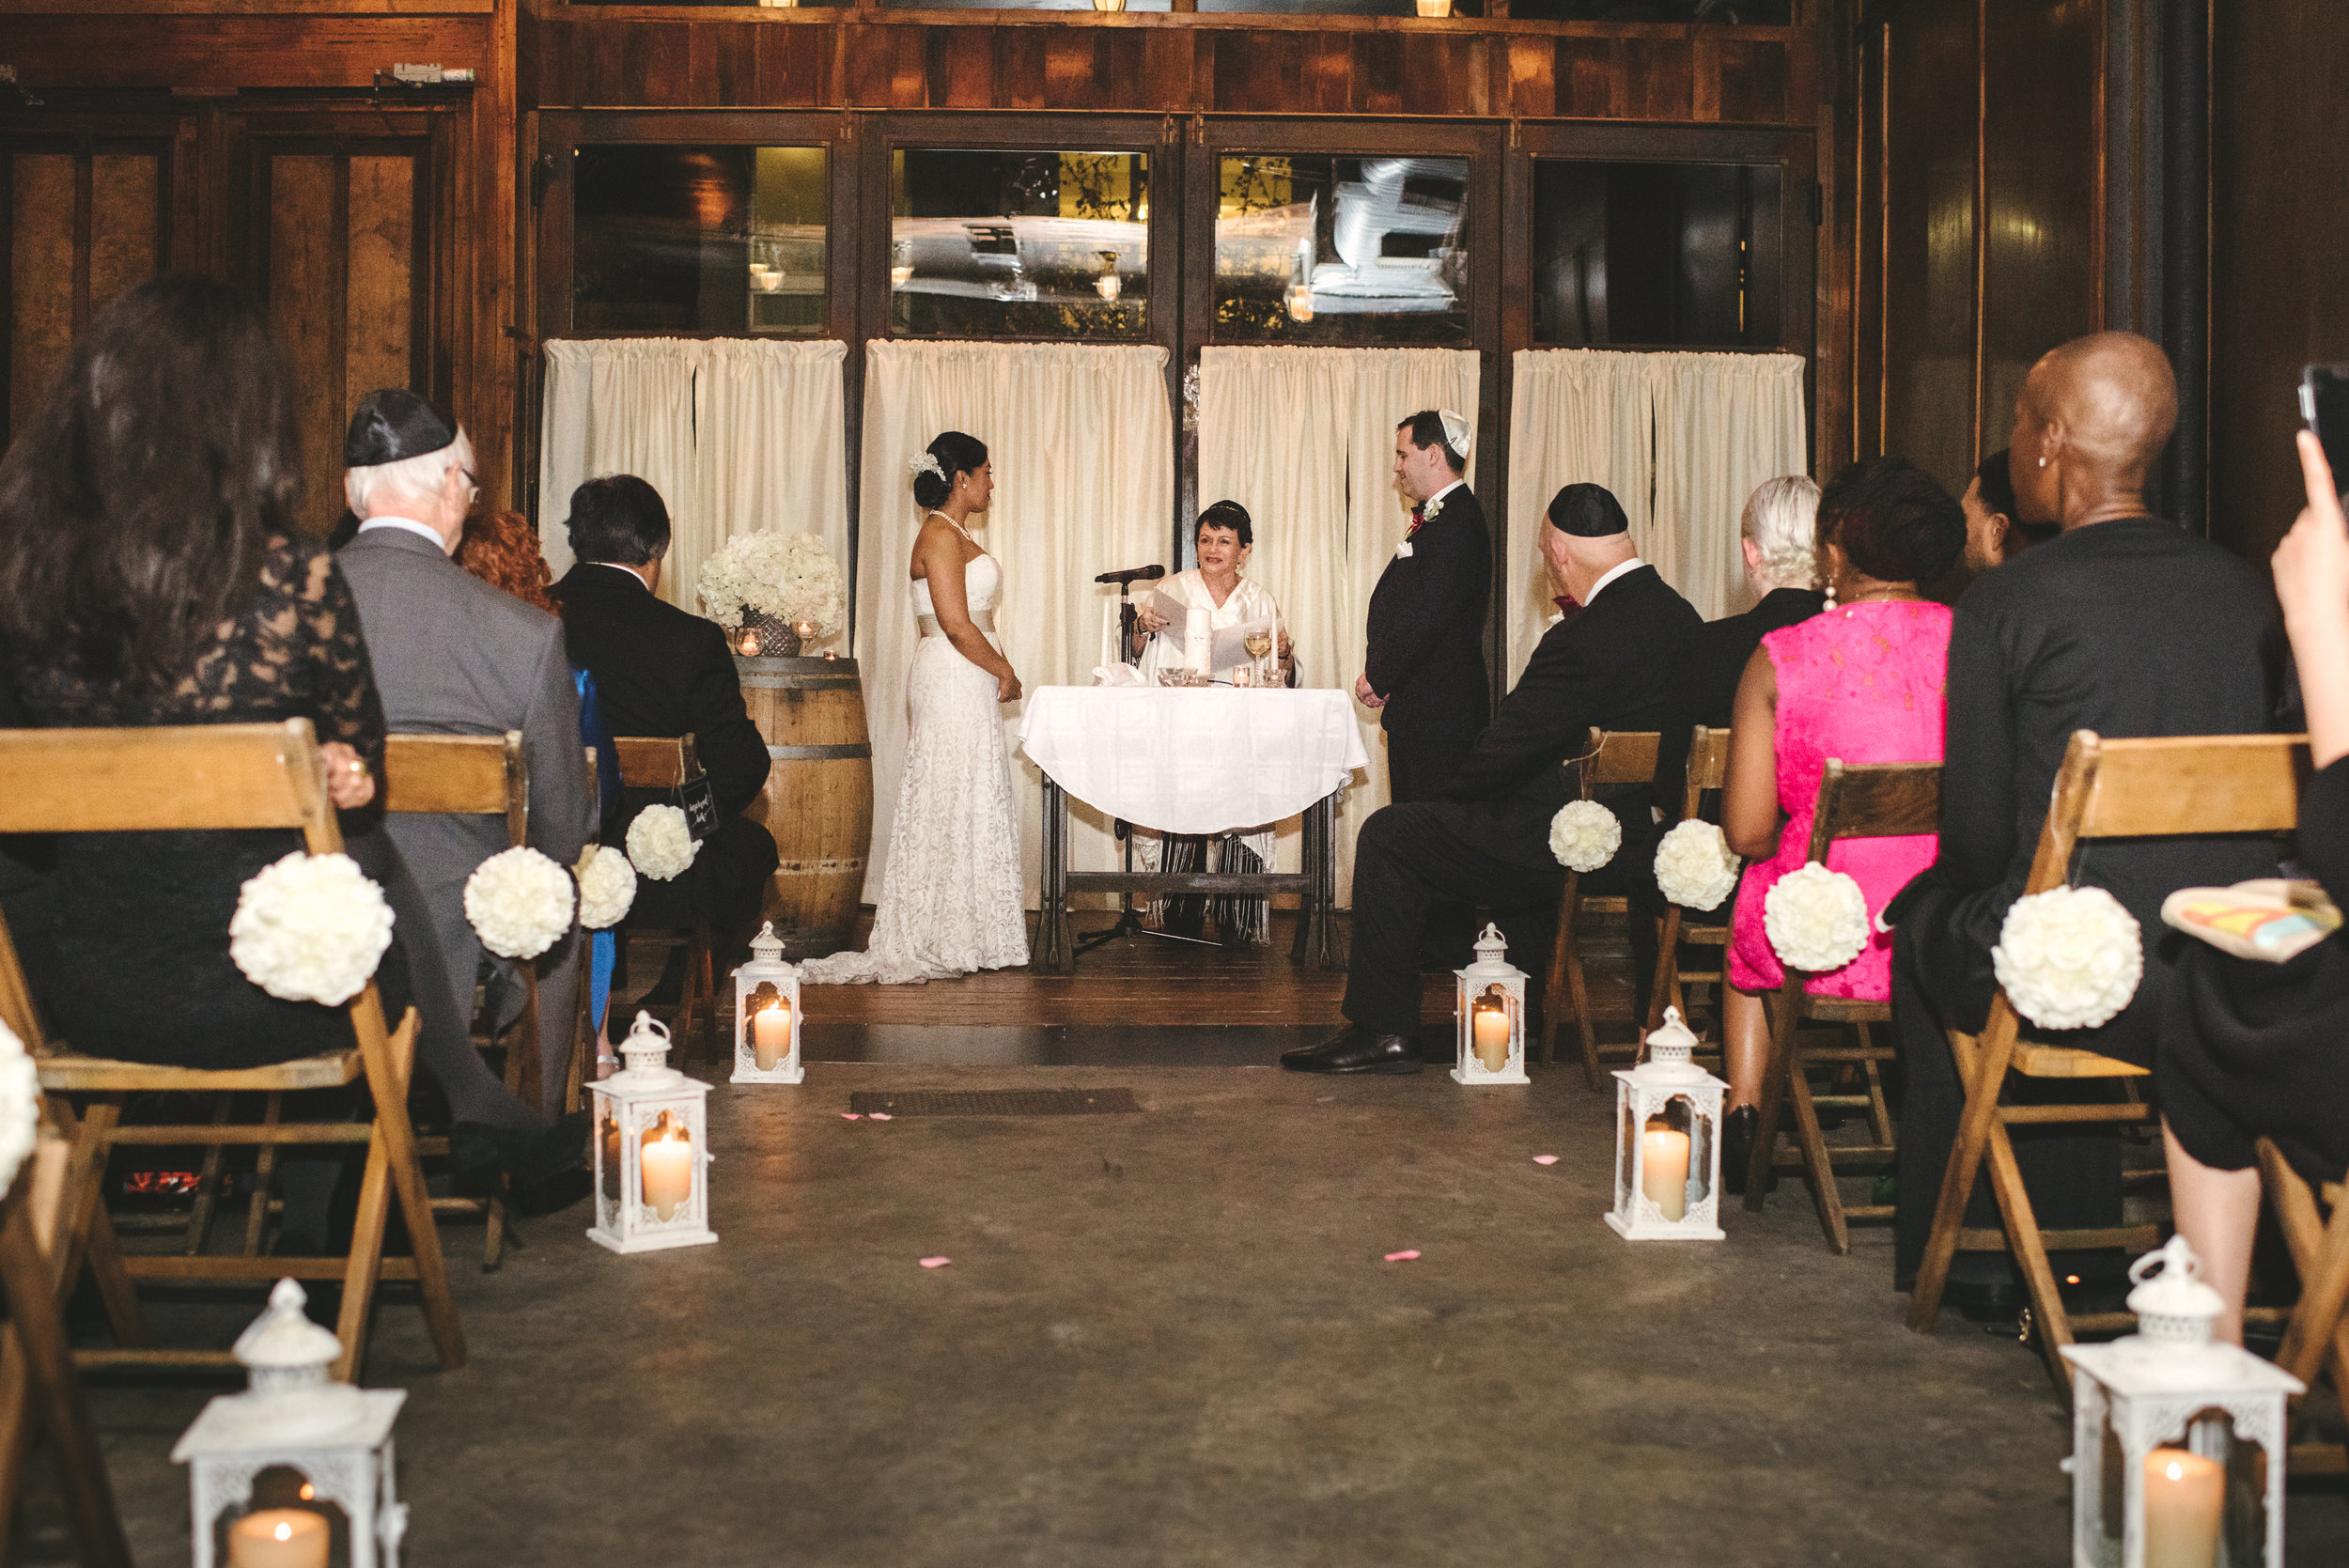 BROOKLYN WINERY WEDDING - TWOTWENTY by CHI-CHI AGBIM-220.jpg